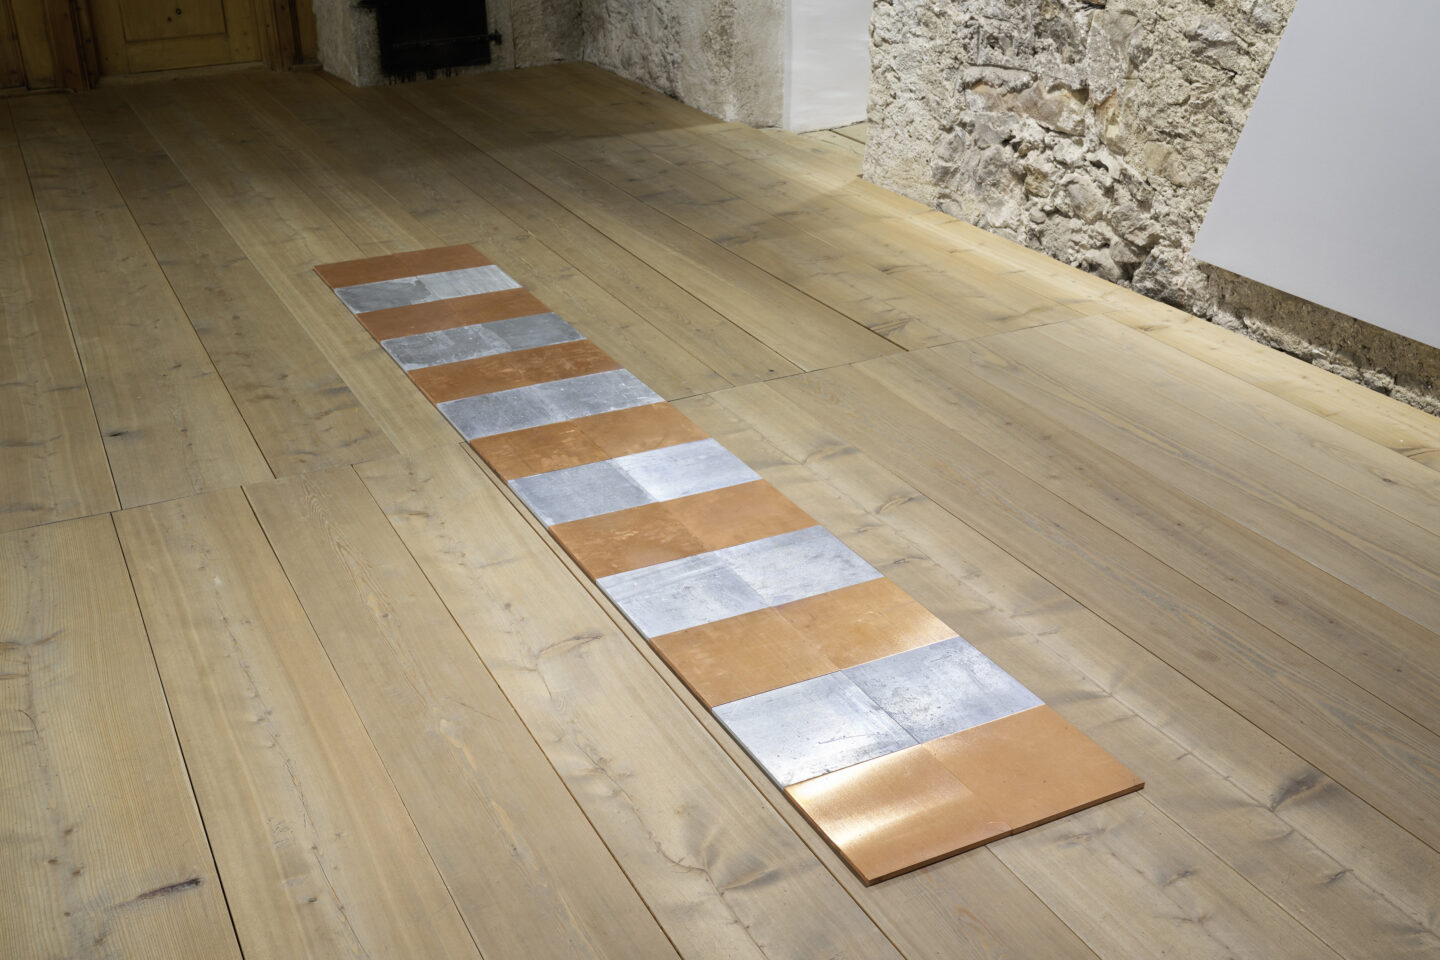 Exhibition View Groupshow «Absolutely Tschudi; view on Carl Andre, Voltaglyph 26, 1997» at Galerie Tschudi, Zuoz, 2019 / Photo: Ralph Feiner, Malans / Courtesy: the artists and Galerie Tschudi, Zuoz